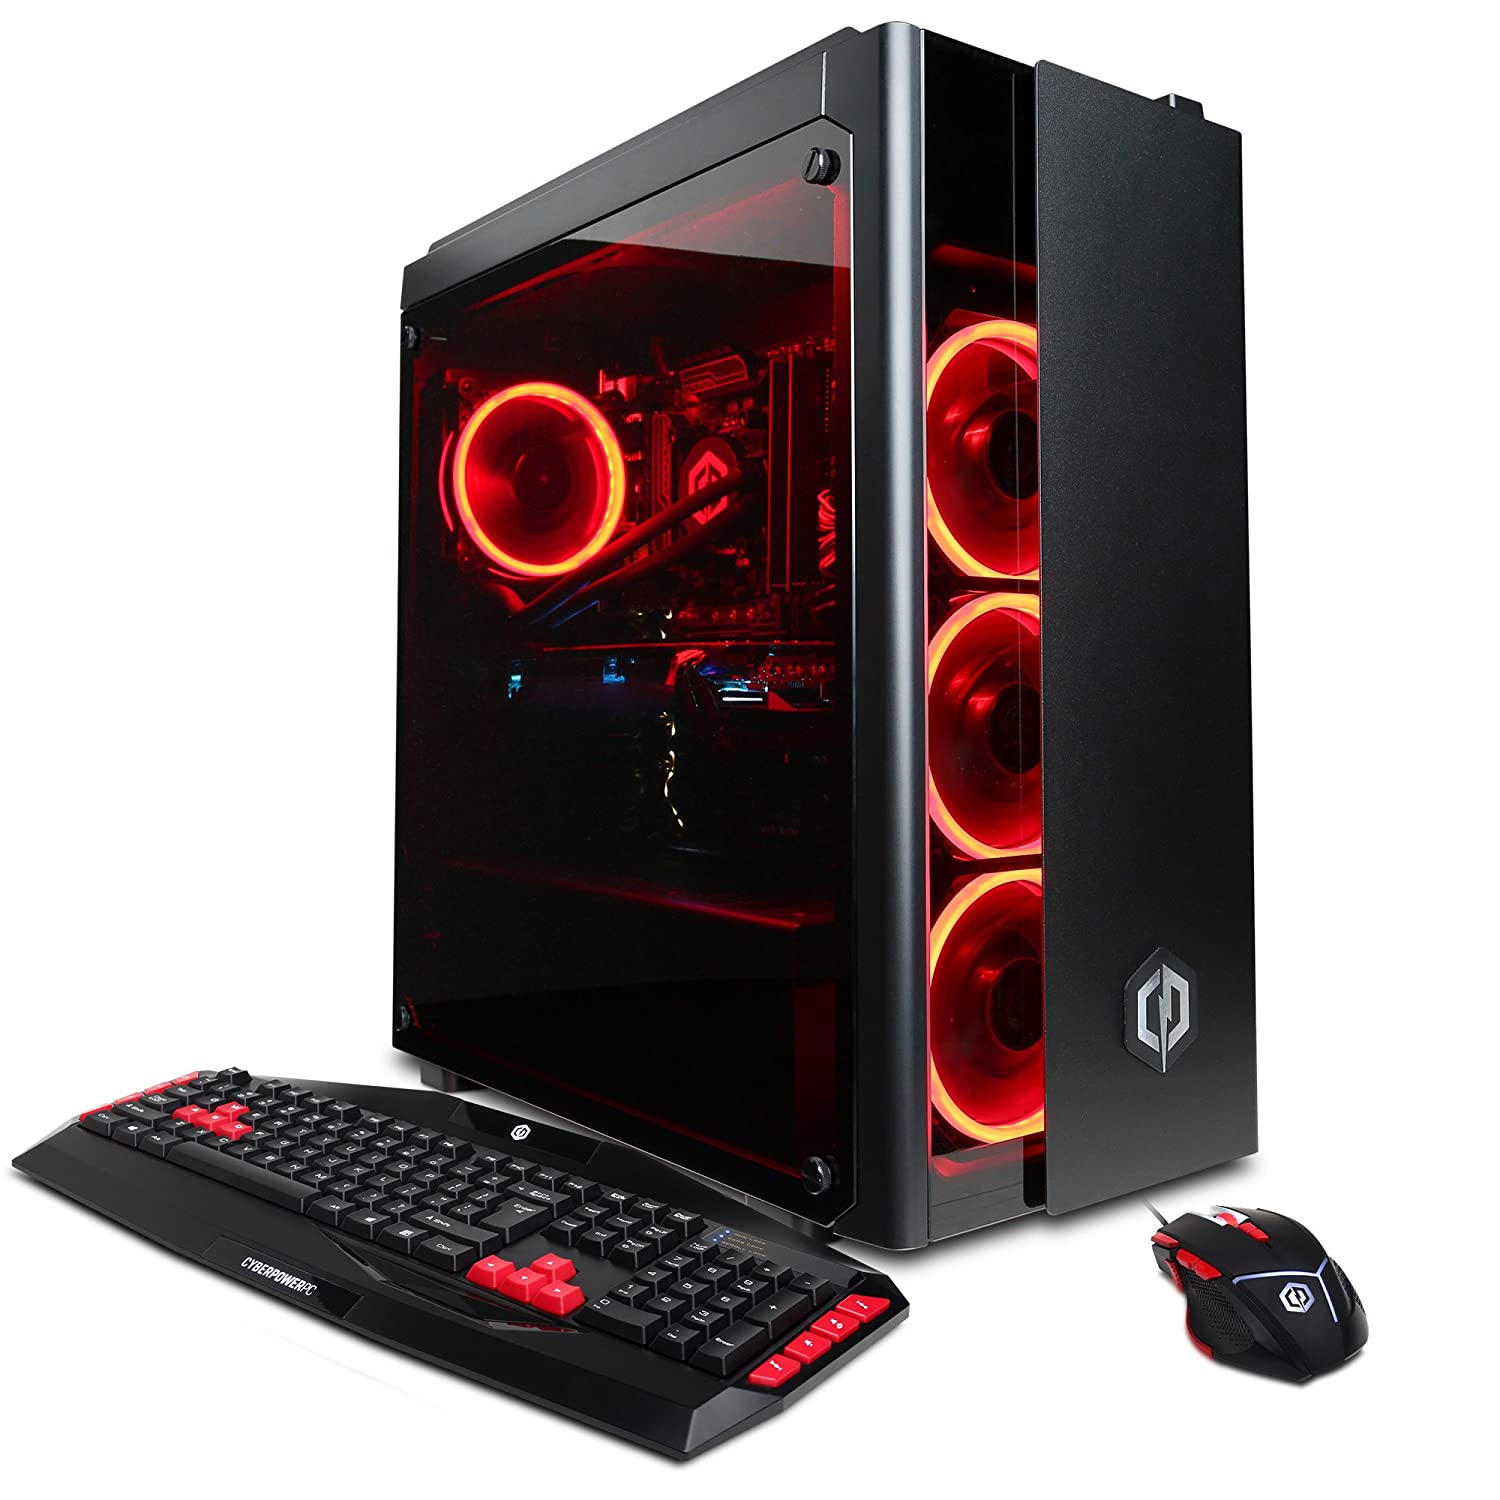 Amazon.com: CYBERPOWERPC Gamer Xtreme VR Gaming PC Desktop GXiVR8080A2  w/Liquid Cooled Overclockable Intel i7-8700K 3.7GHz CPU, 16GB DDR4, NVIDIA  GTX 1080 ...